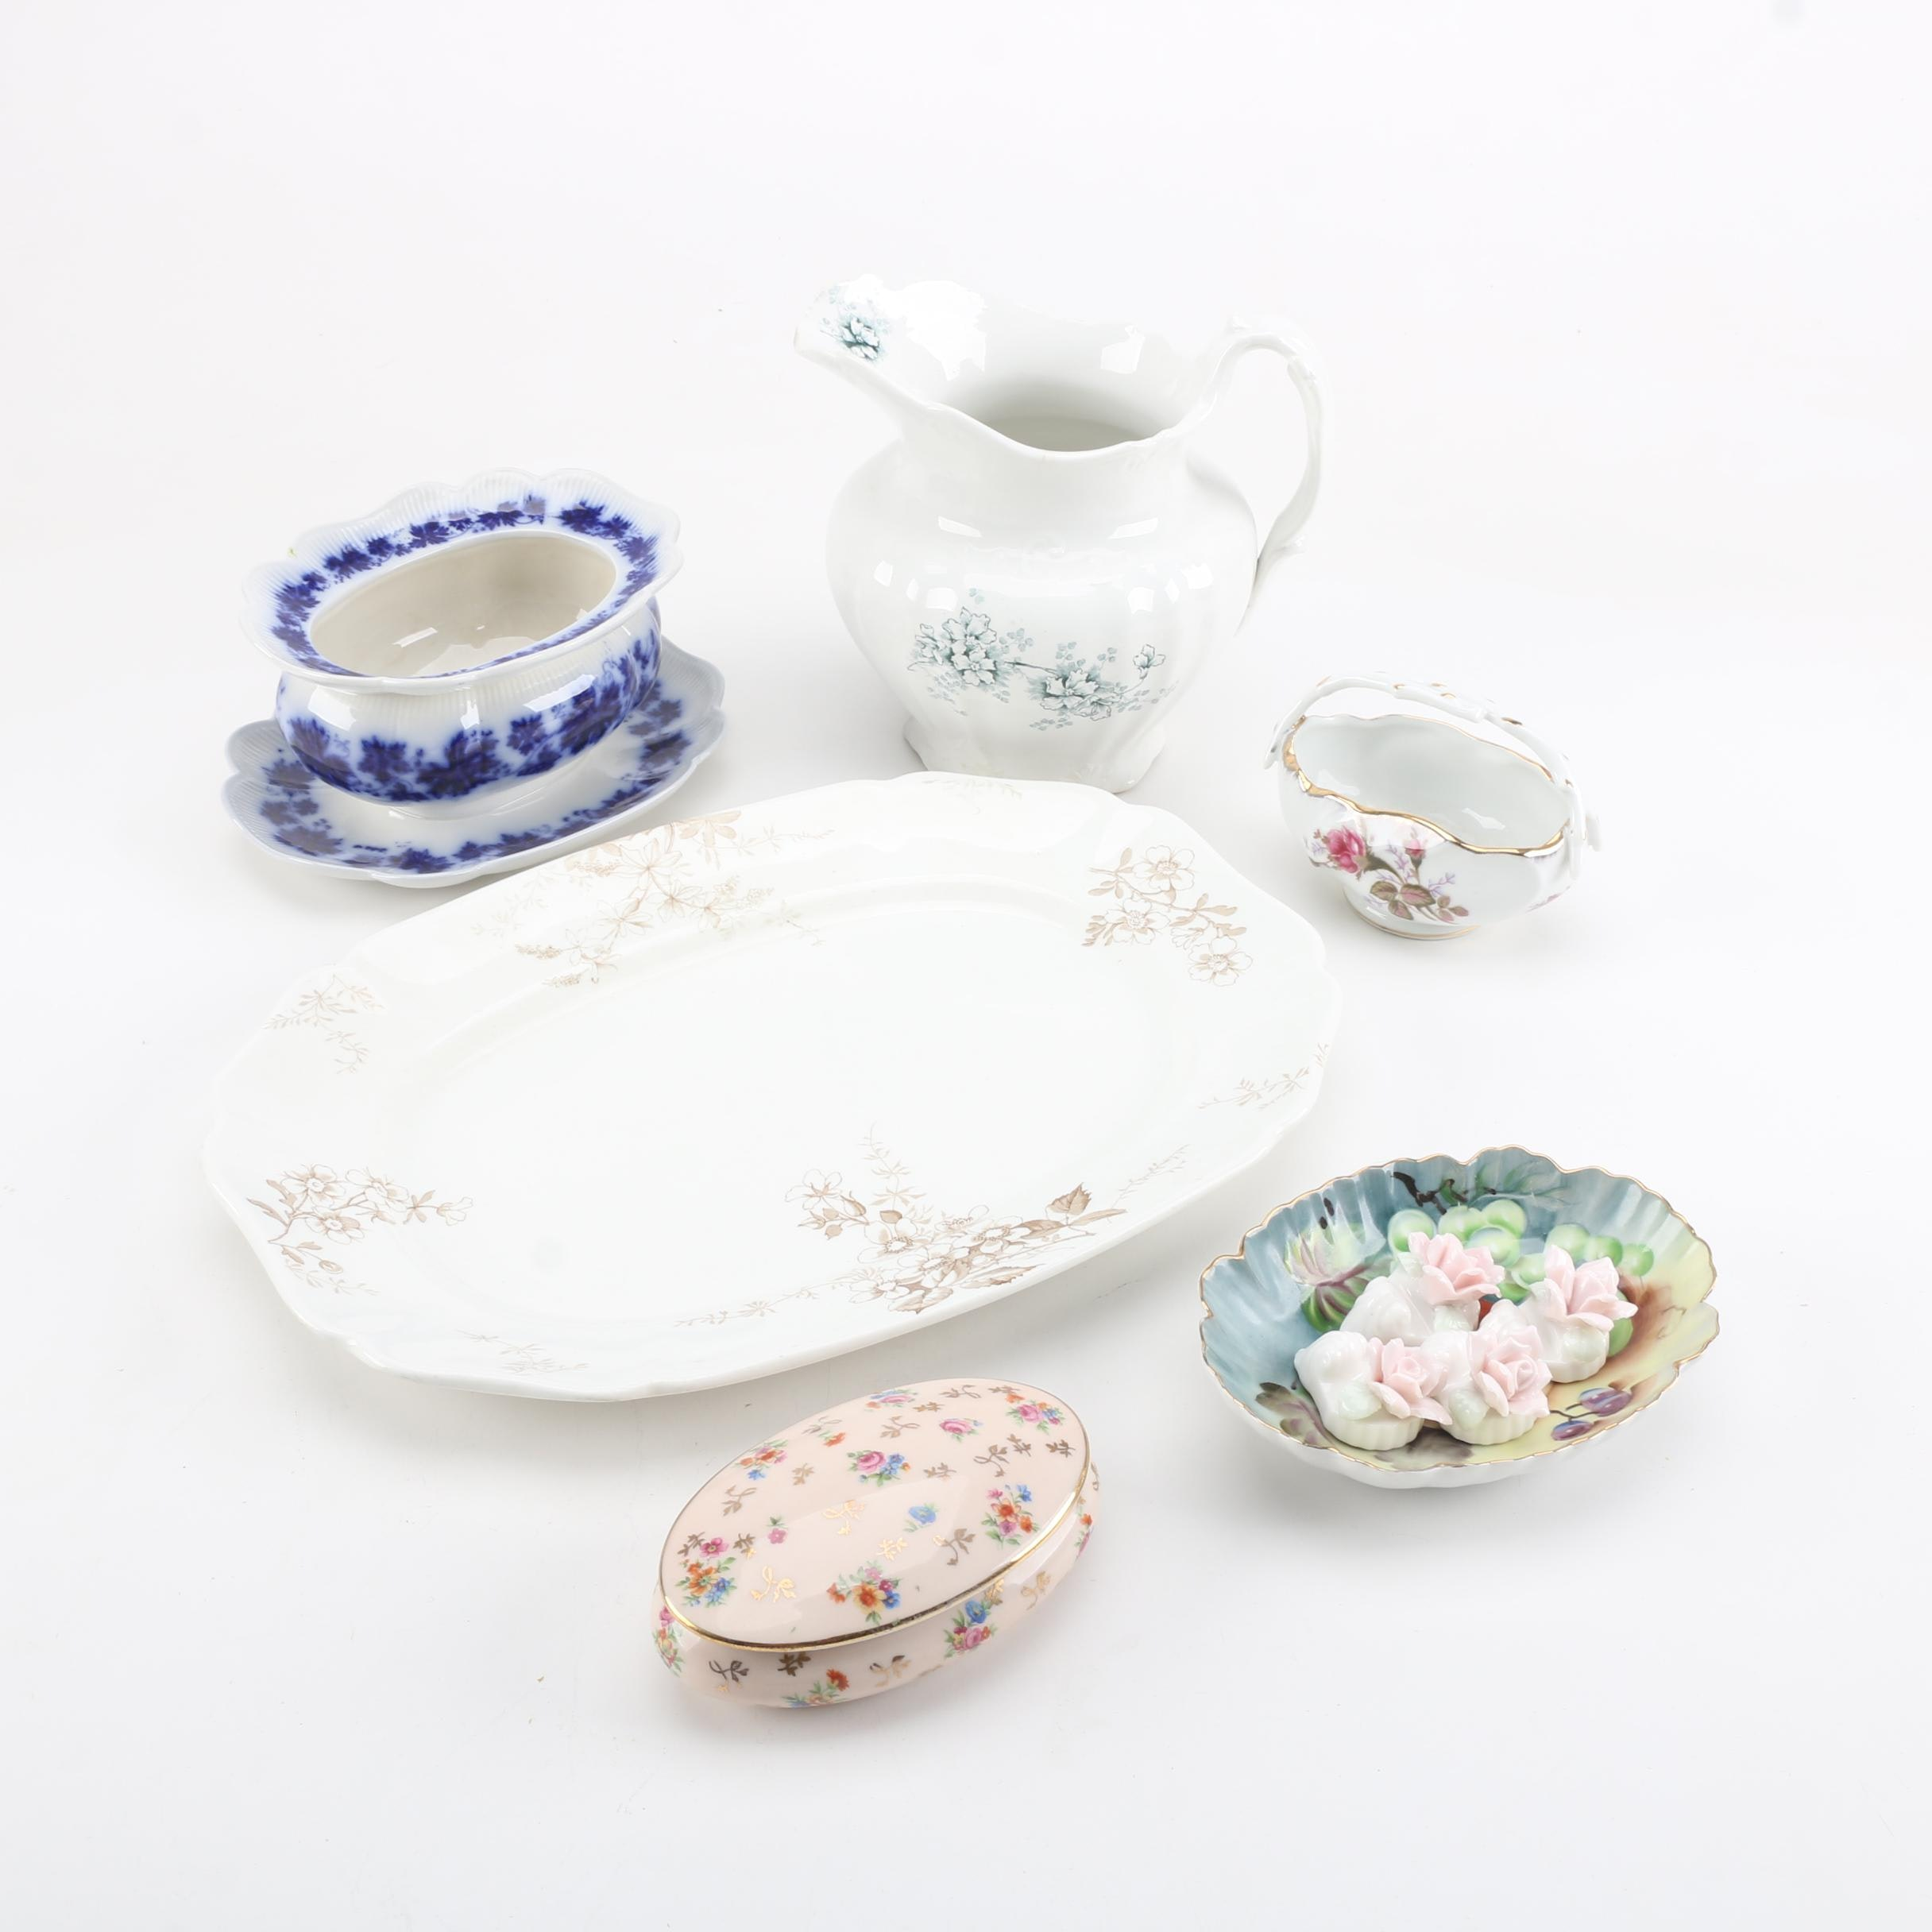 """Antique Alfred Meakin, Gefle Sweden """"Vinranka"""" and Other Decor and Tableware"""